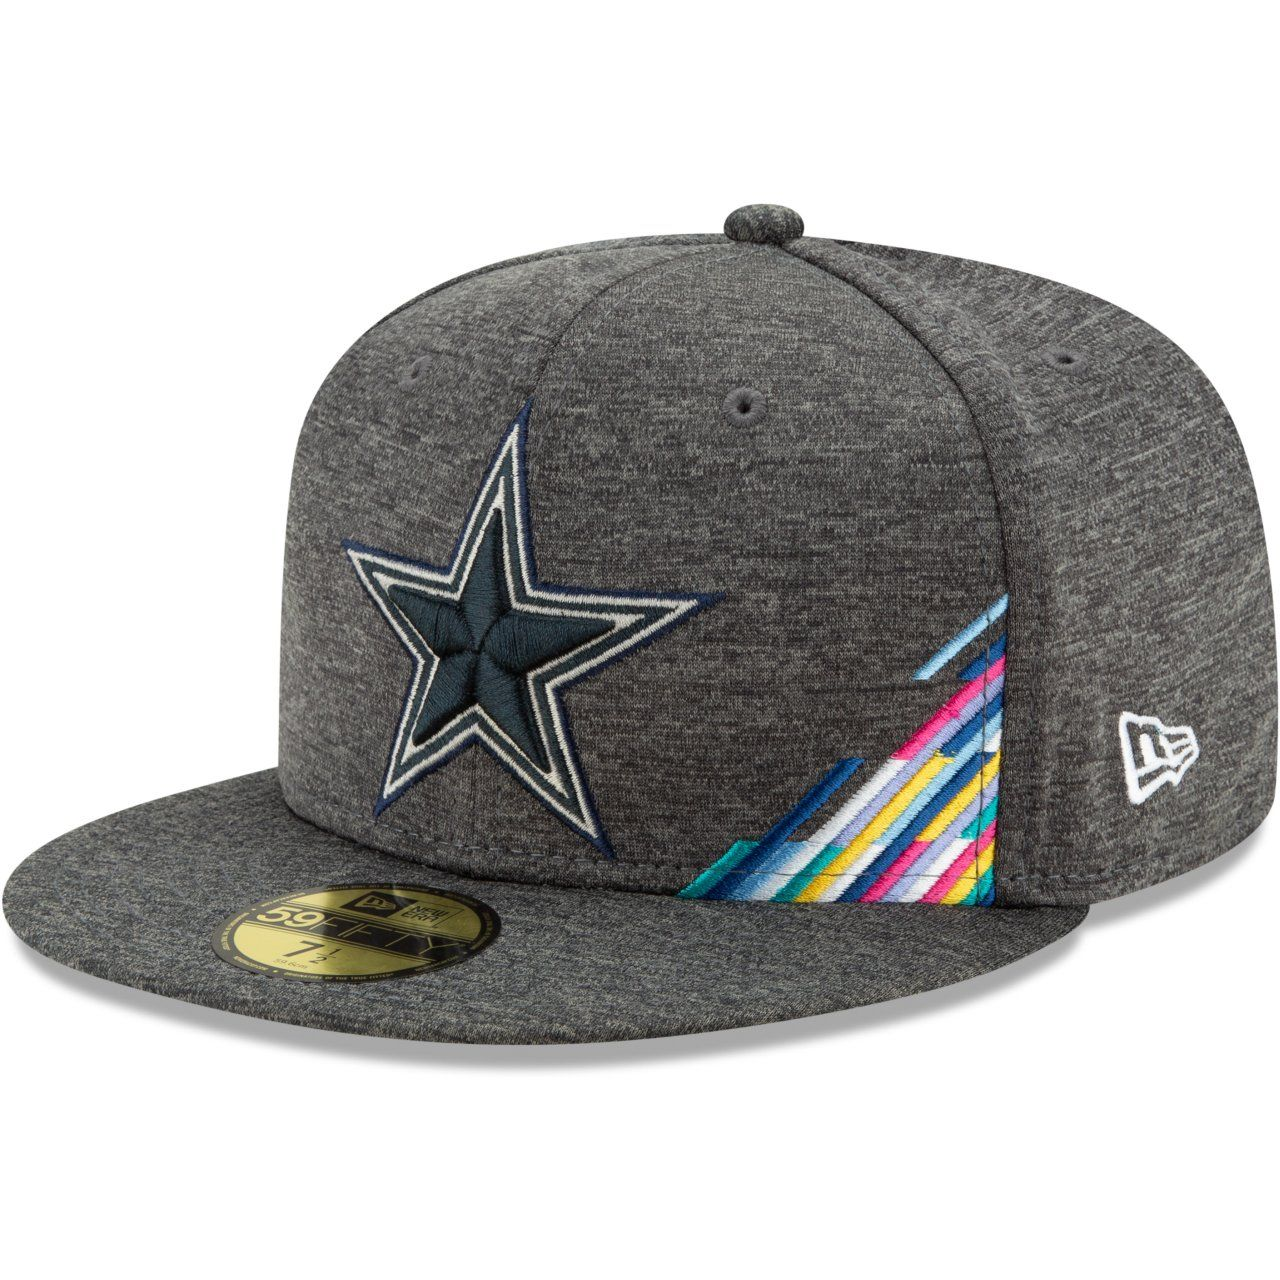 New Era 59Fifty Fitted Cap - CRUCIAL CATCH Dallas Cowboys von New Era